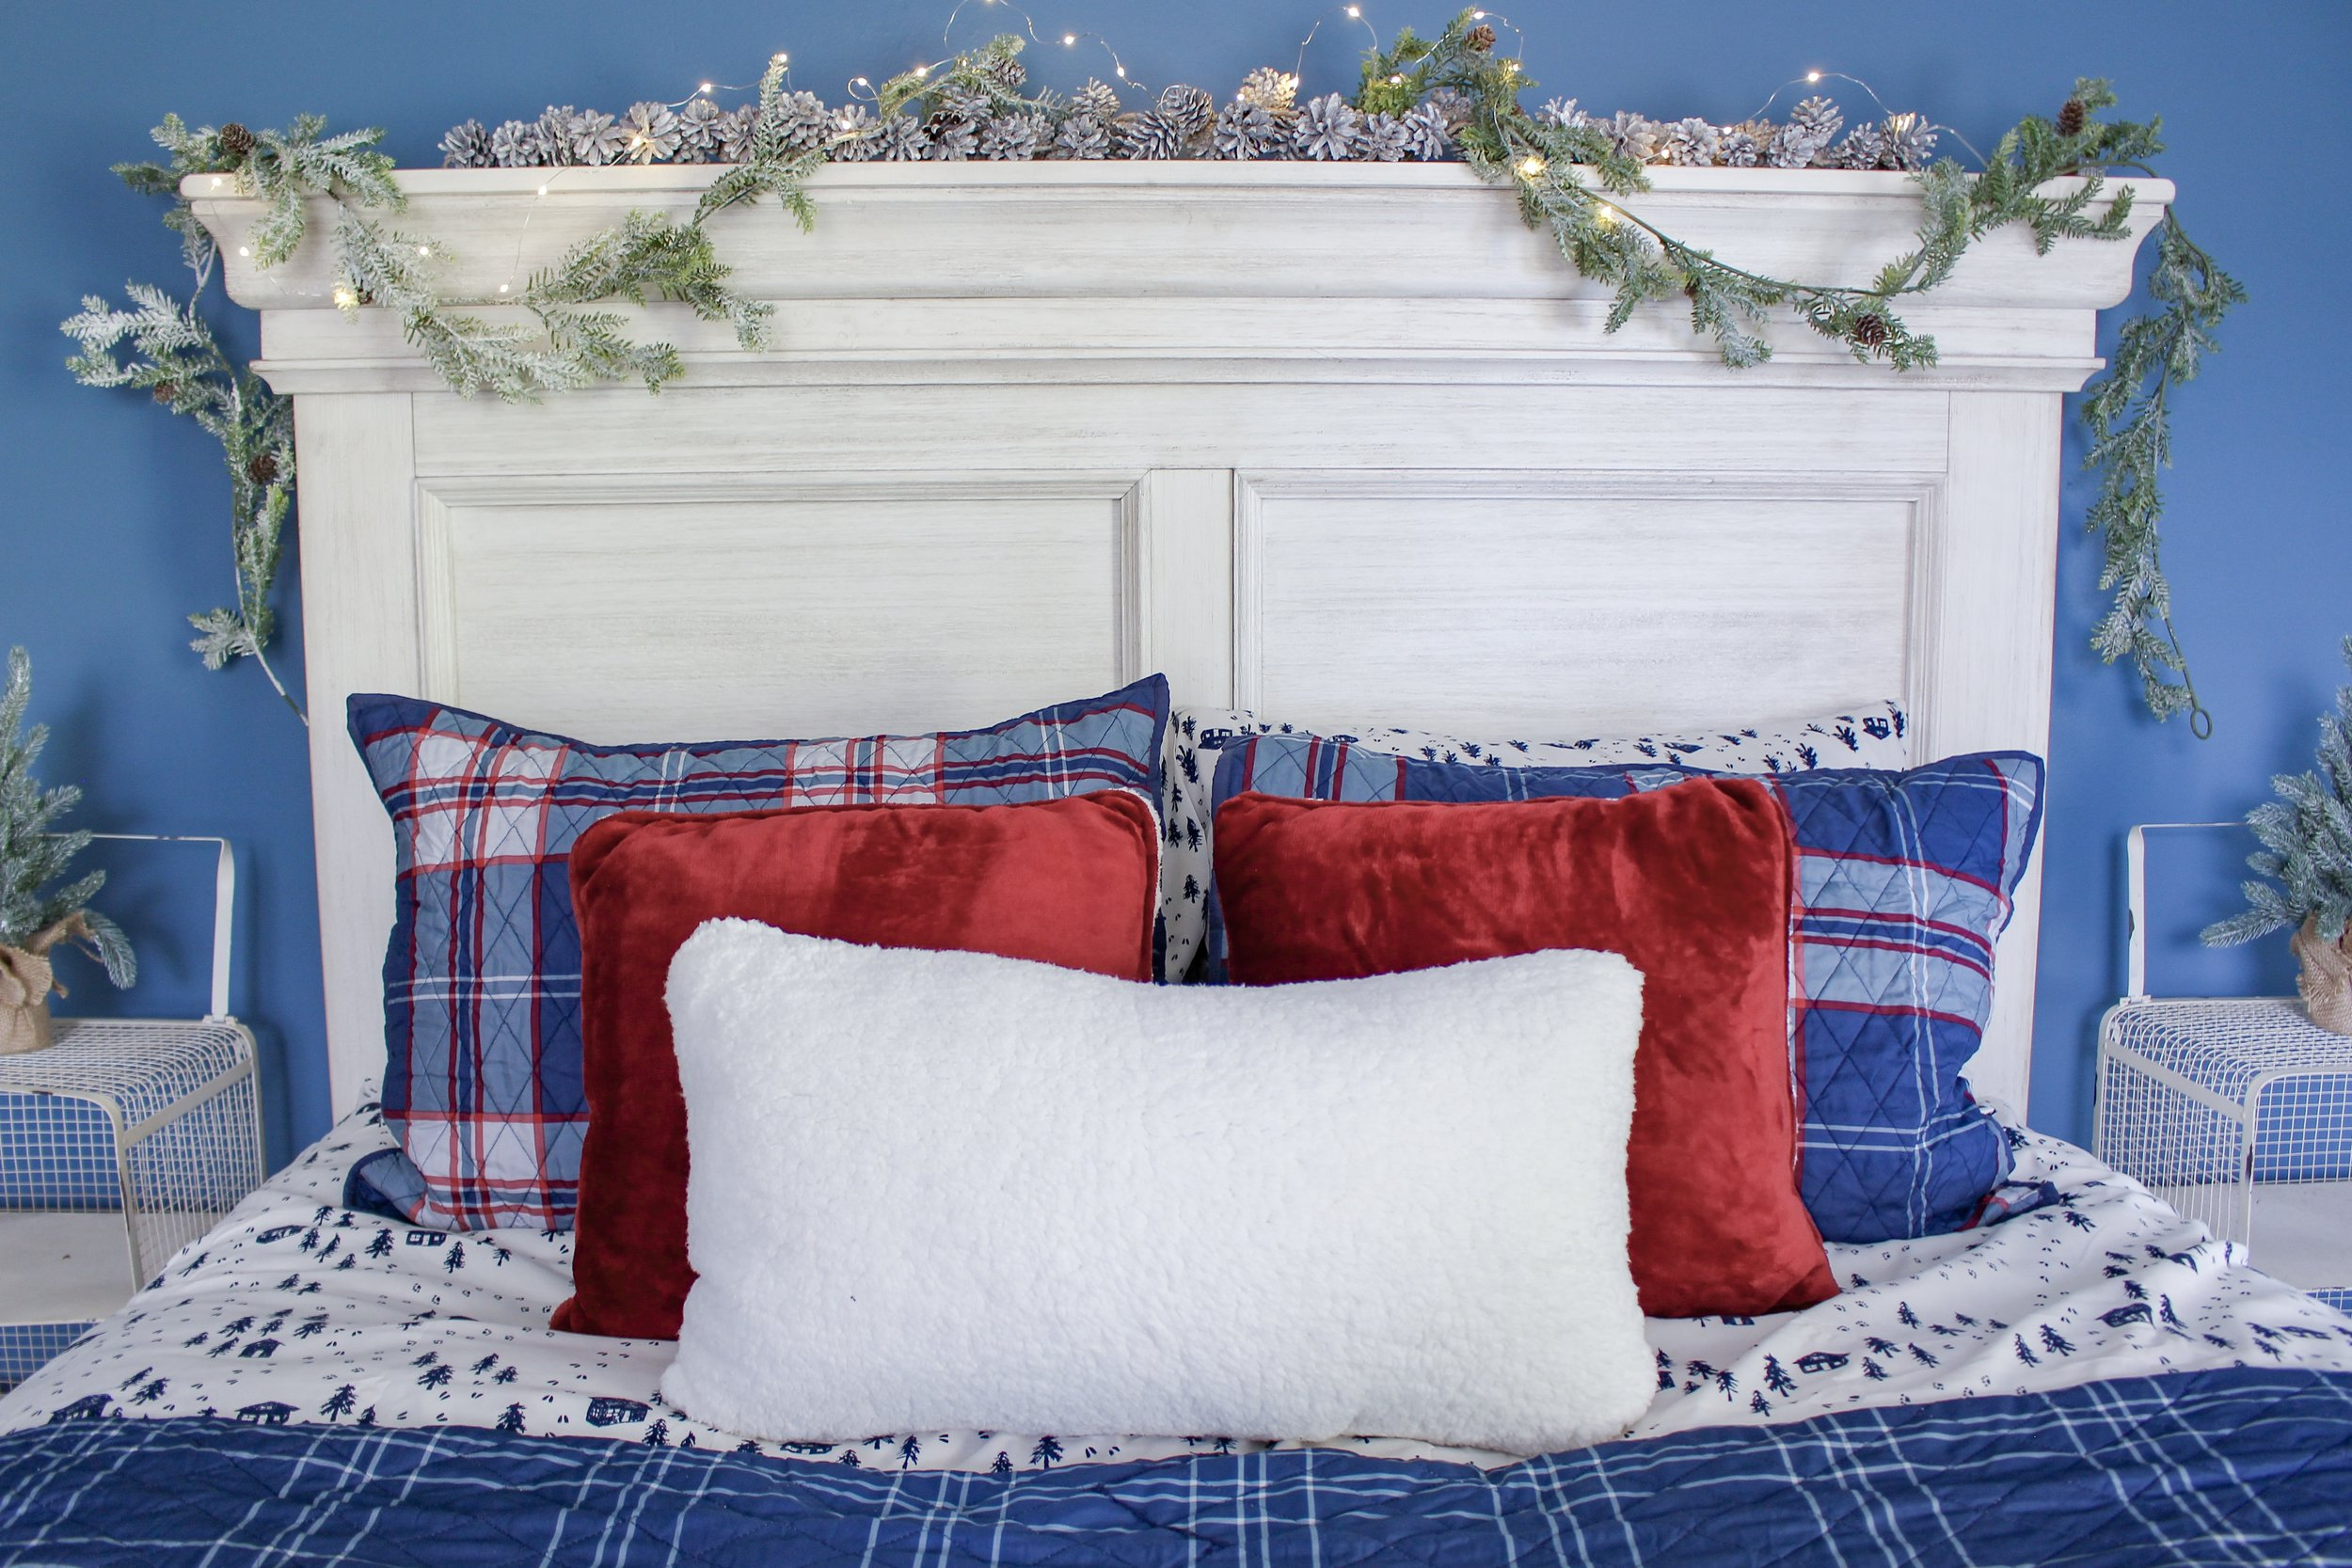 Holiday pillows in guest room